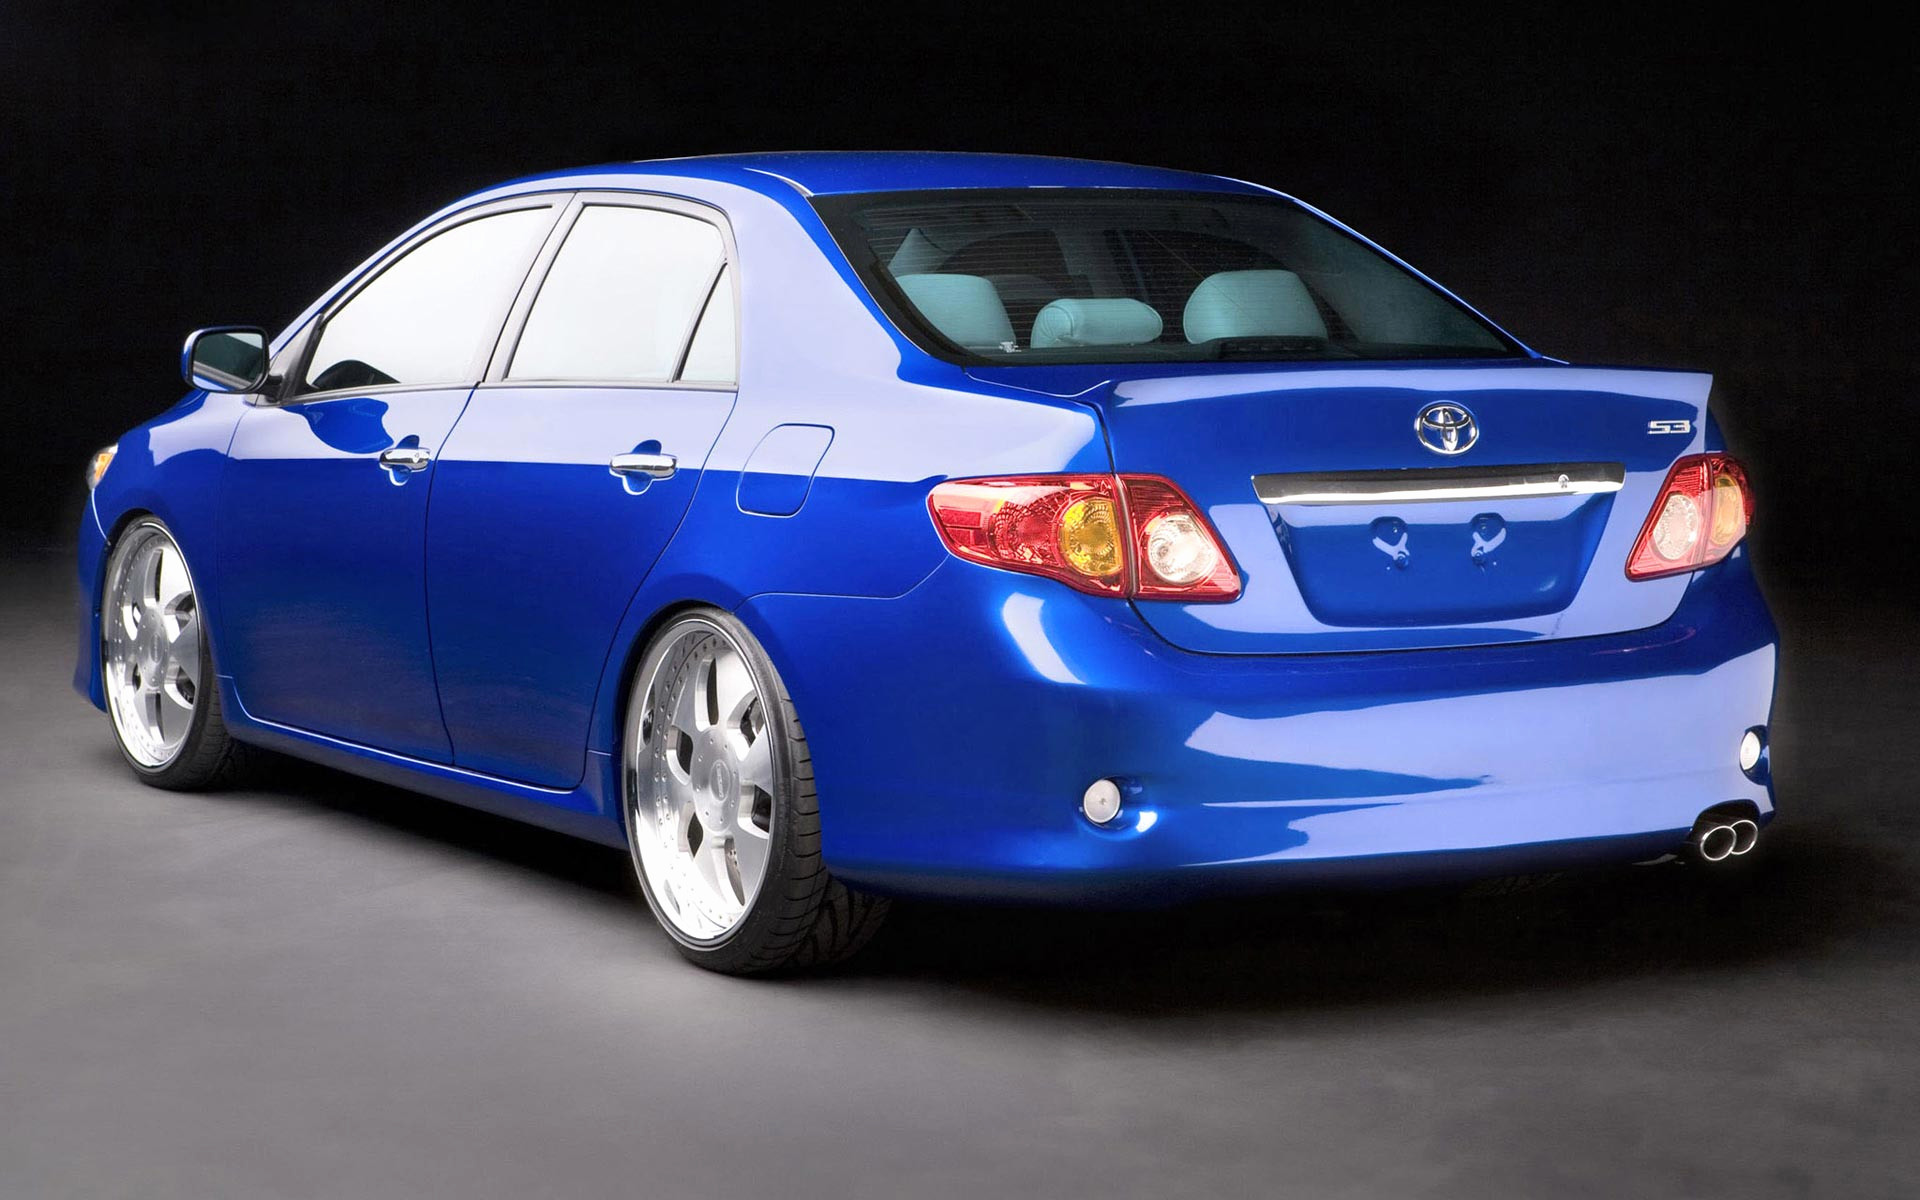 Toyota Corolla Wallpapers 183 ① Wallpapertag